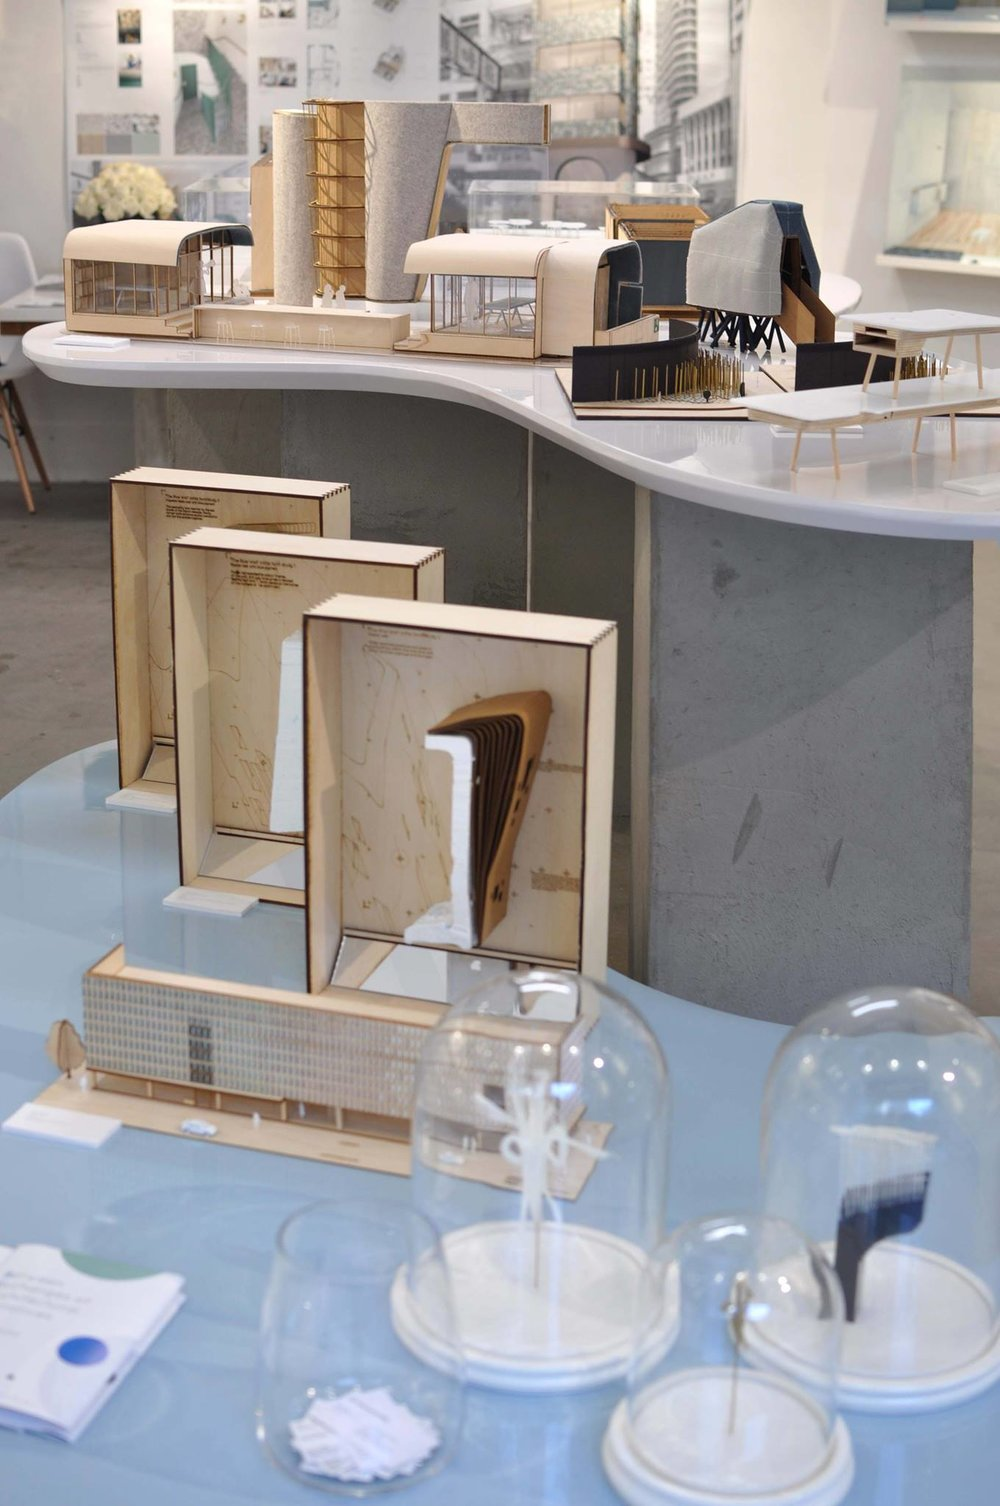 Le French May_  Our exhibition of over 100 exhibits of drawings and models at Le French May!   #architecture   #interior   #research   #design   #beanburo   #lefrenchmay  #winsmart   #zenith